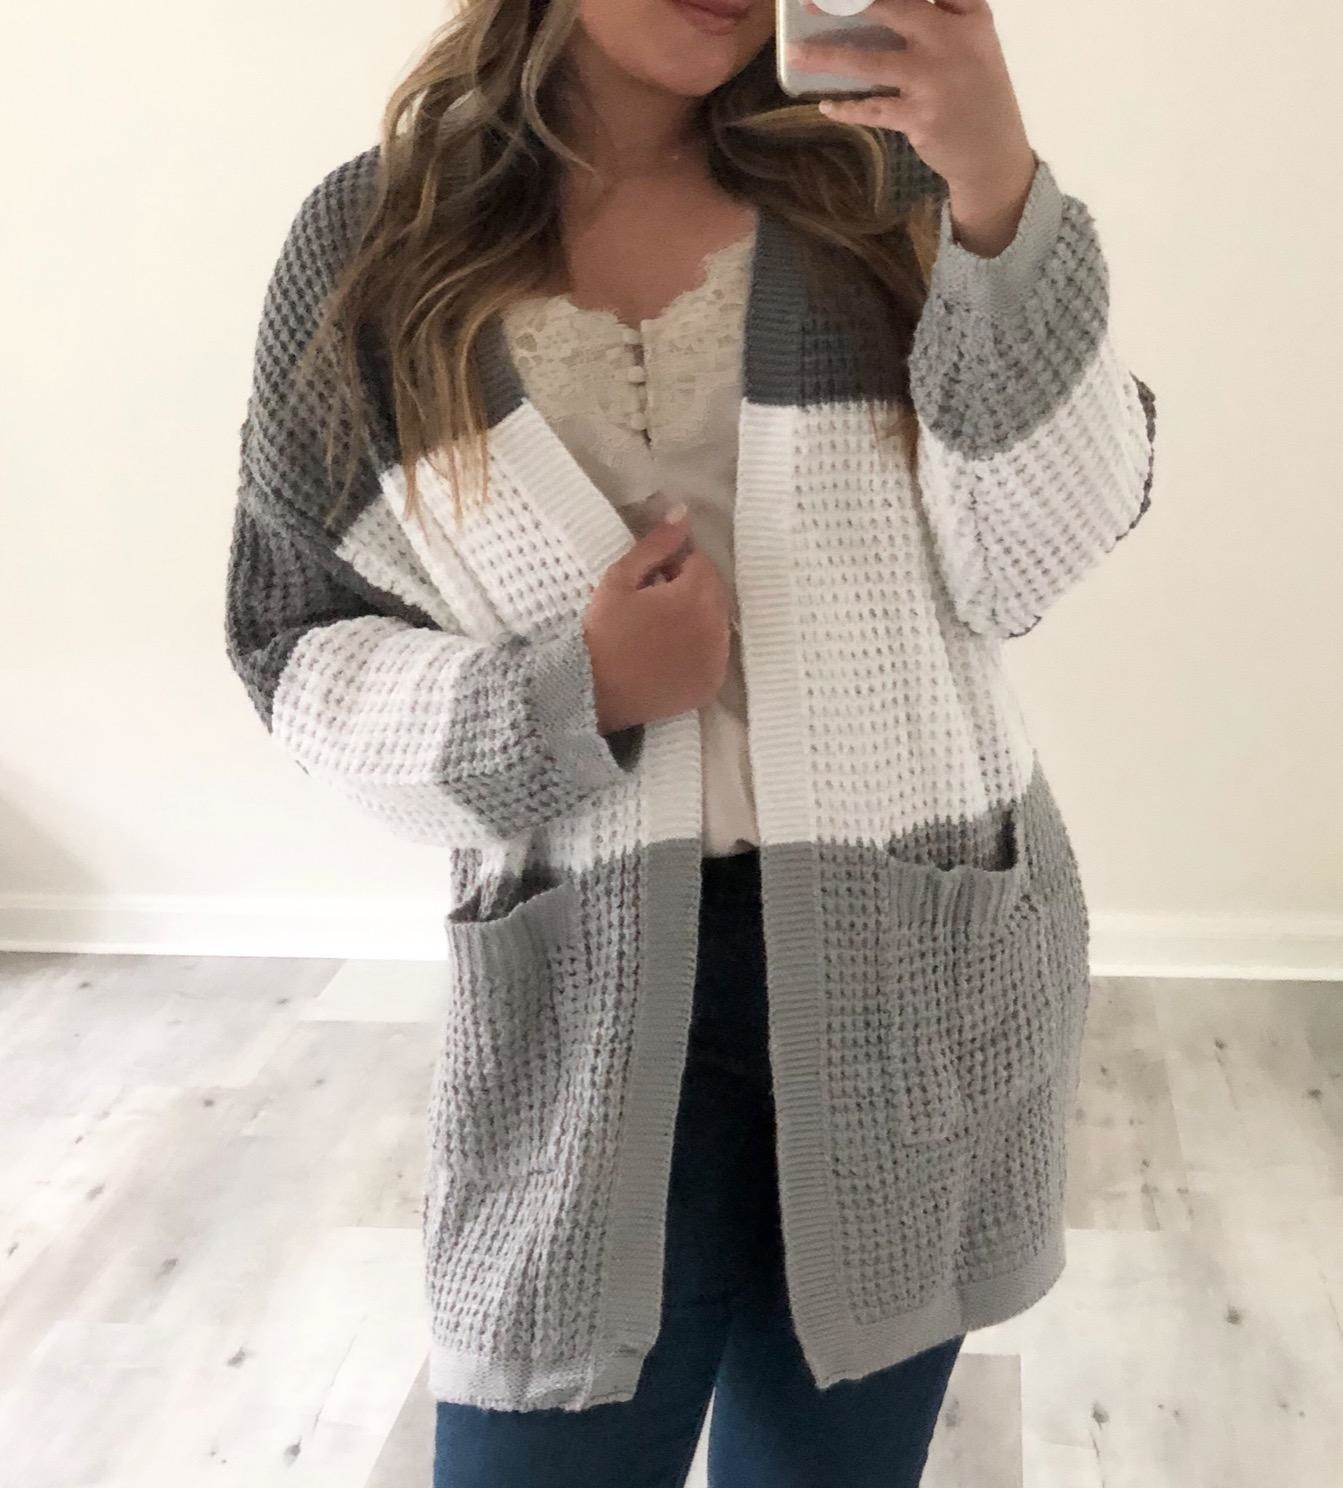 Reviewer wearing cardigan in the shade contrast-gray